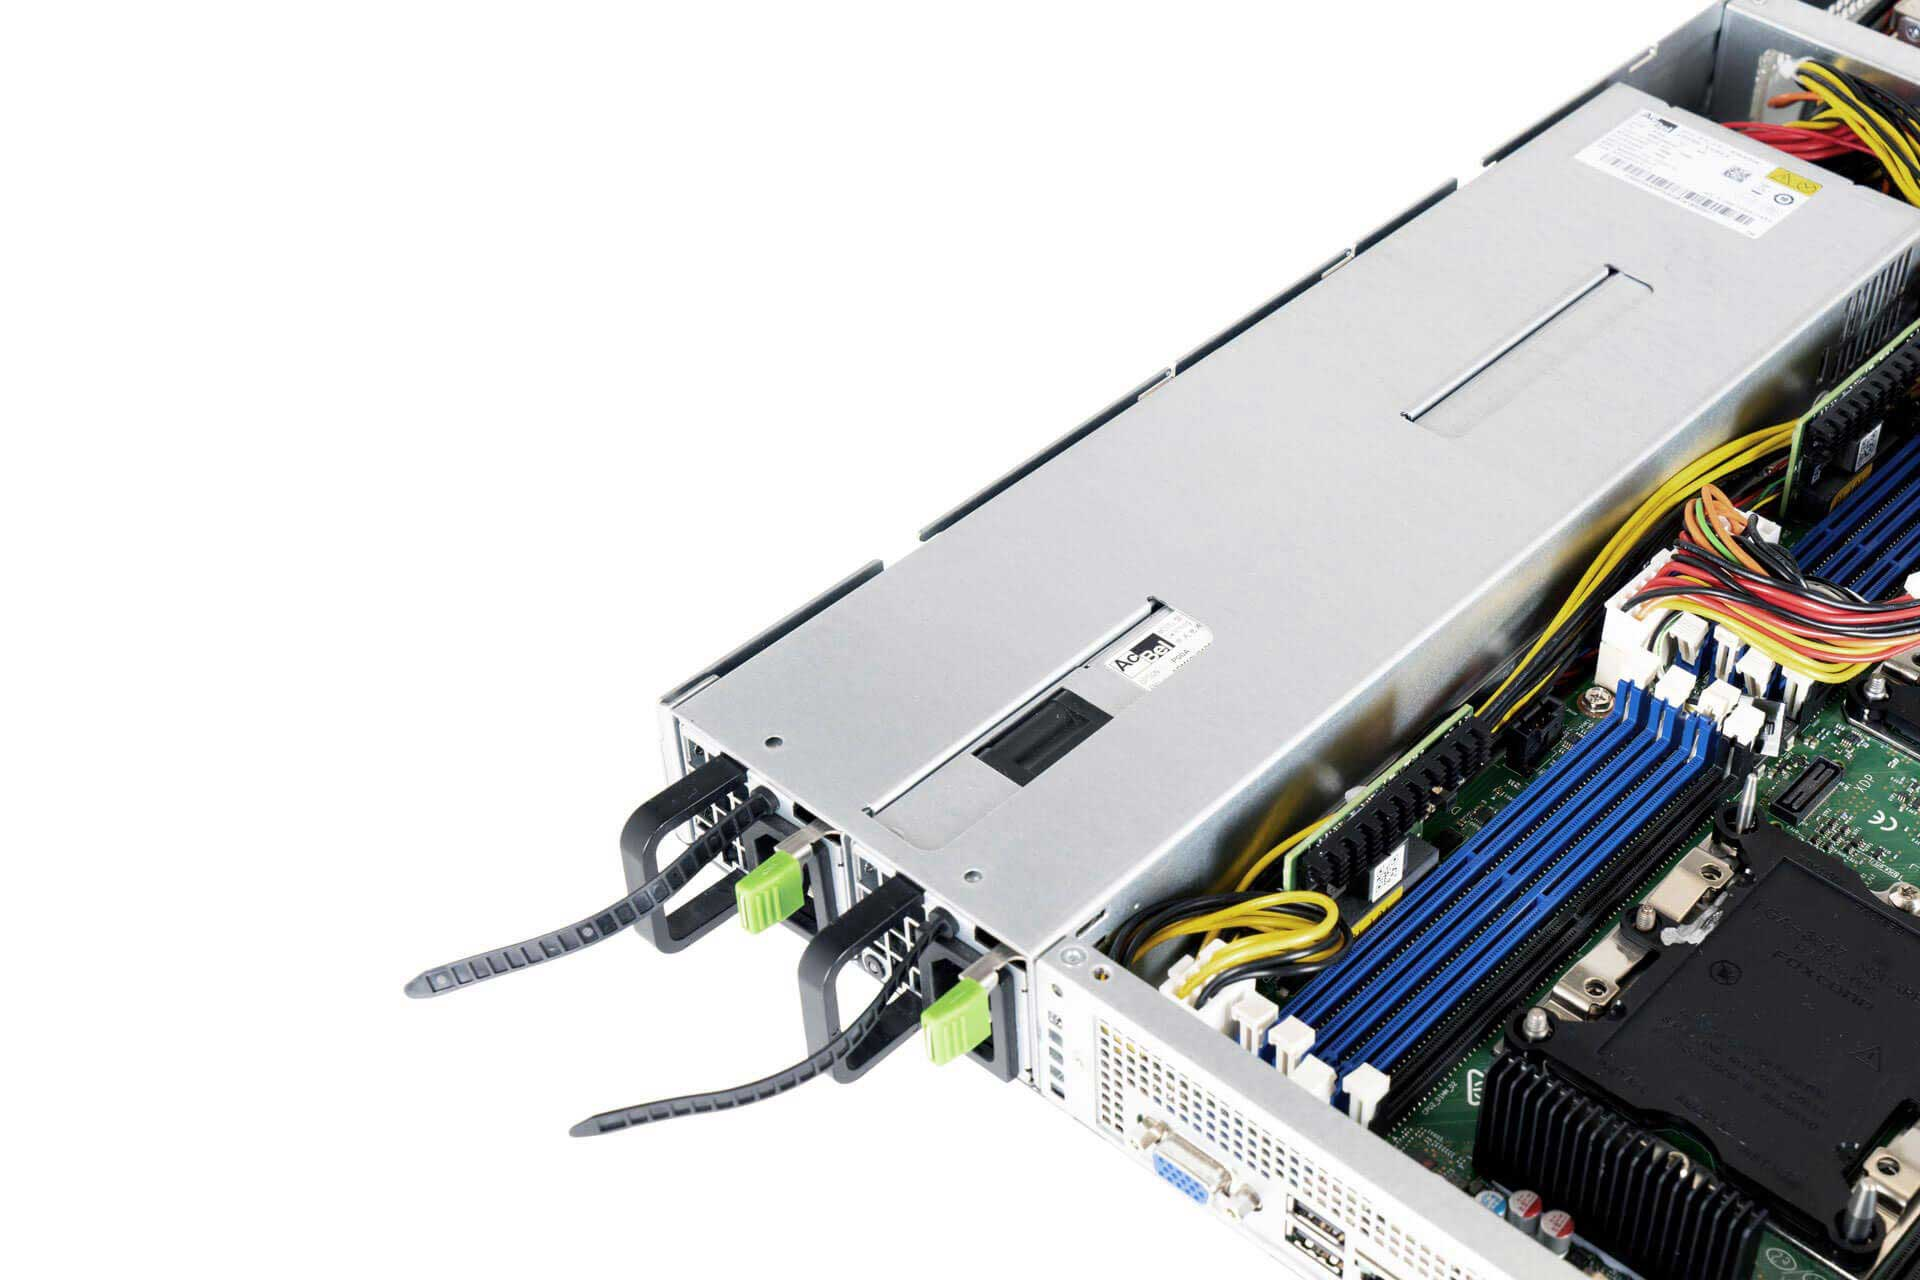 IW-RS118-03 - server system assembly